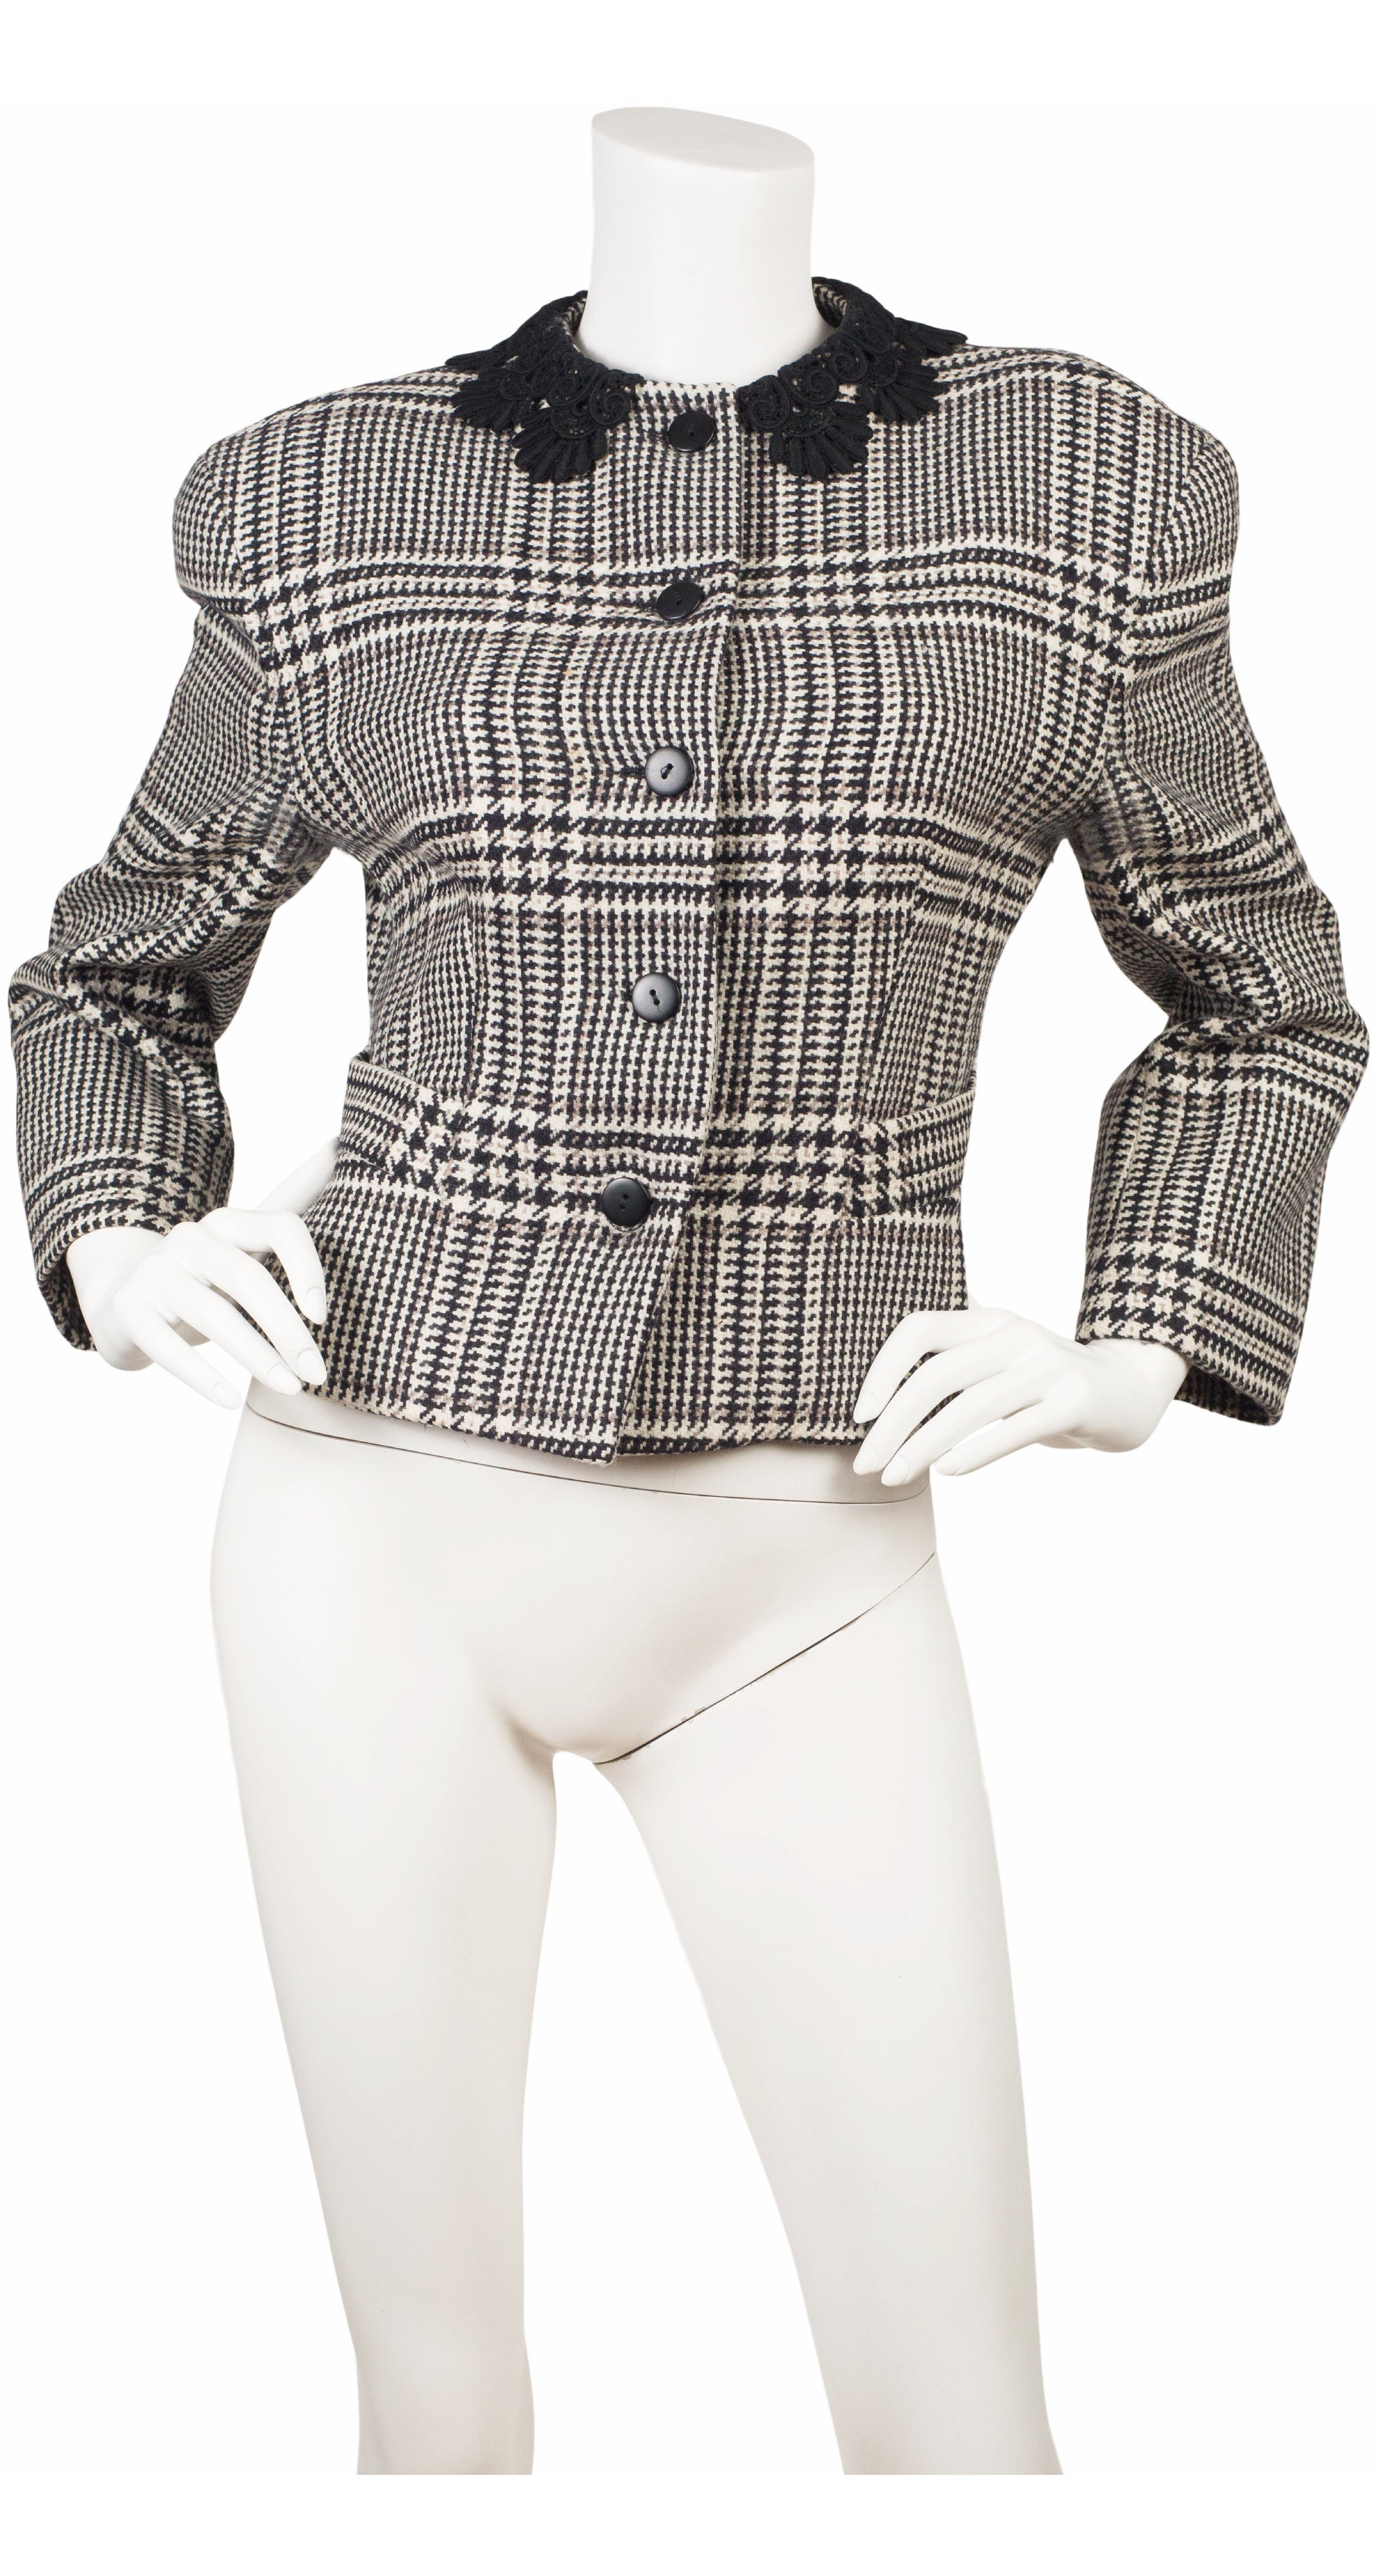 1980s Lace Collar Houndstooth Wool Jacket